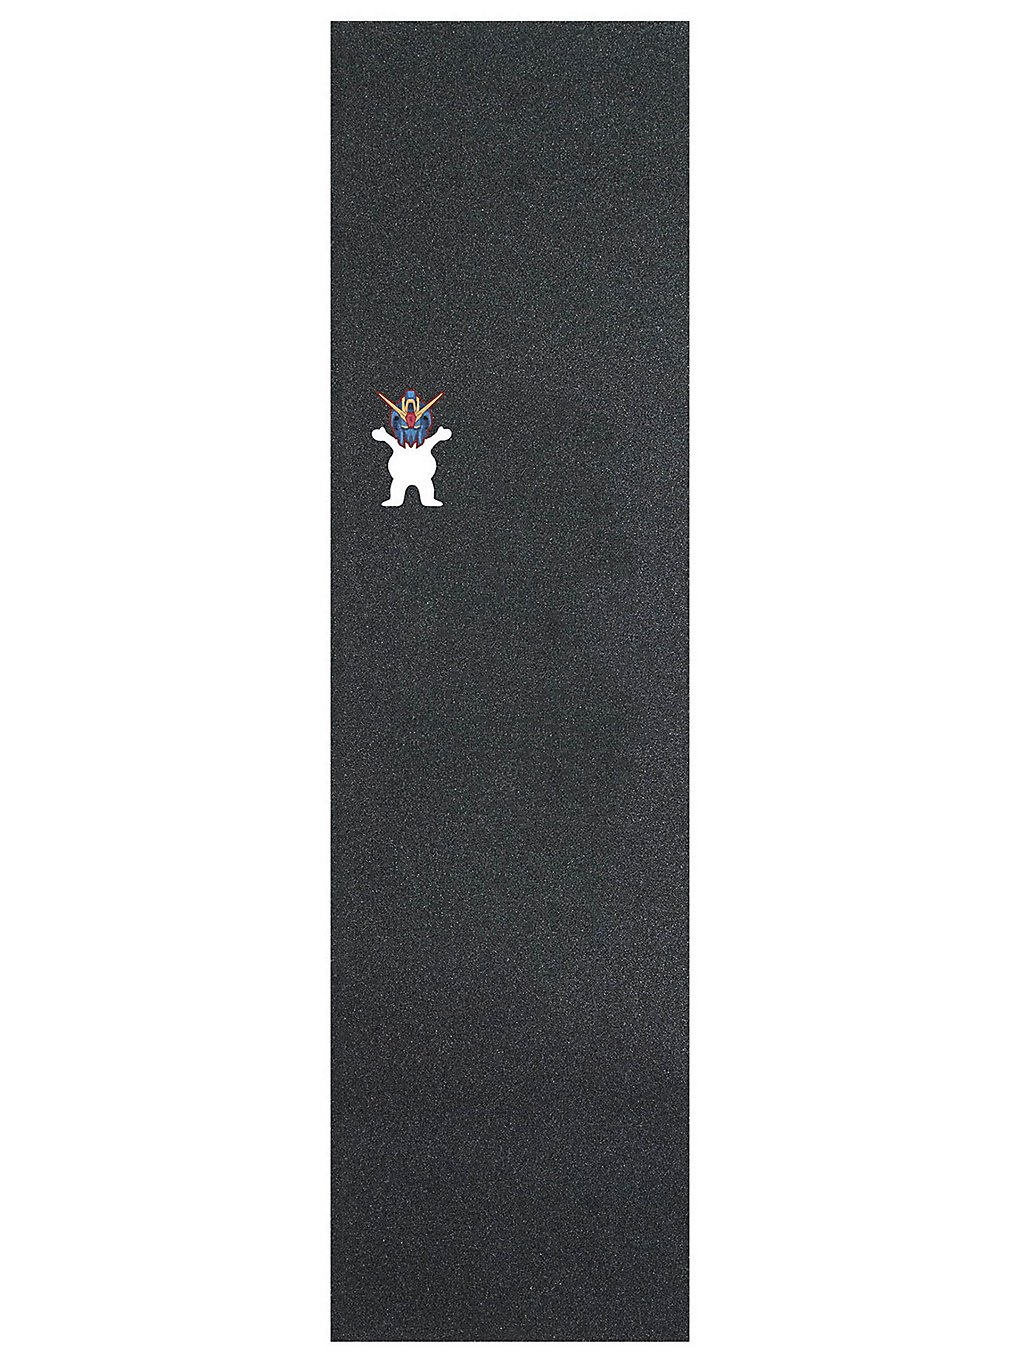 Grizzly Oneill Autobear Grip Tape